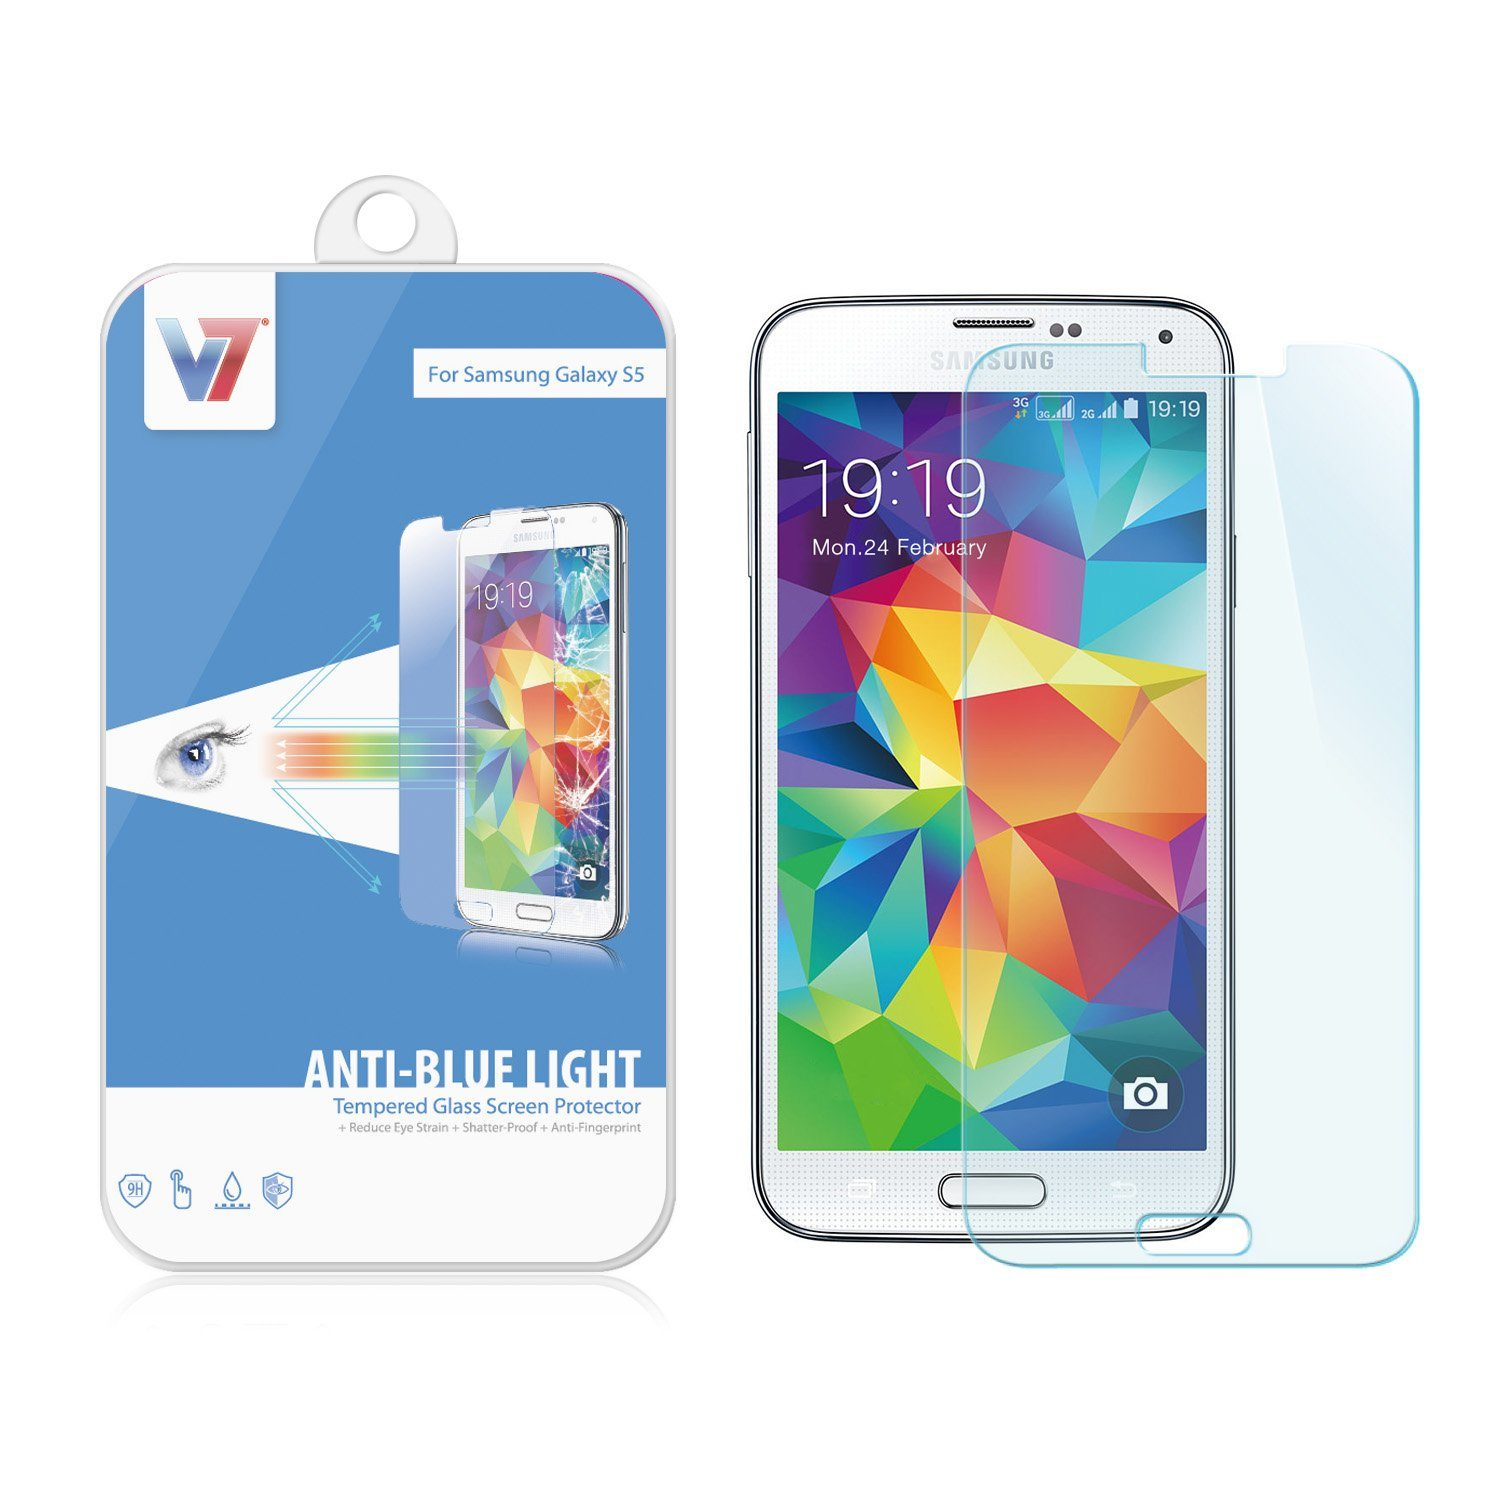 V7 Protection Sheet »+ SAMSUNG S5 SCREEN PROTECTOR«